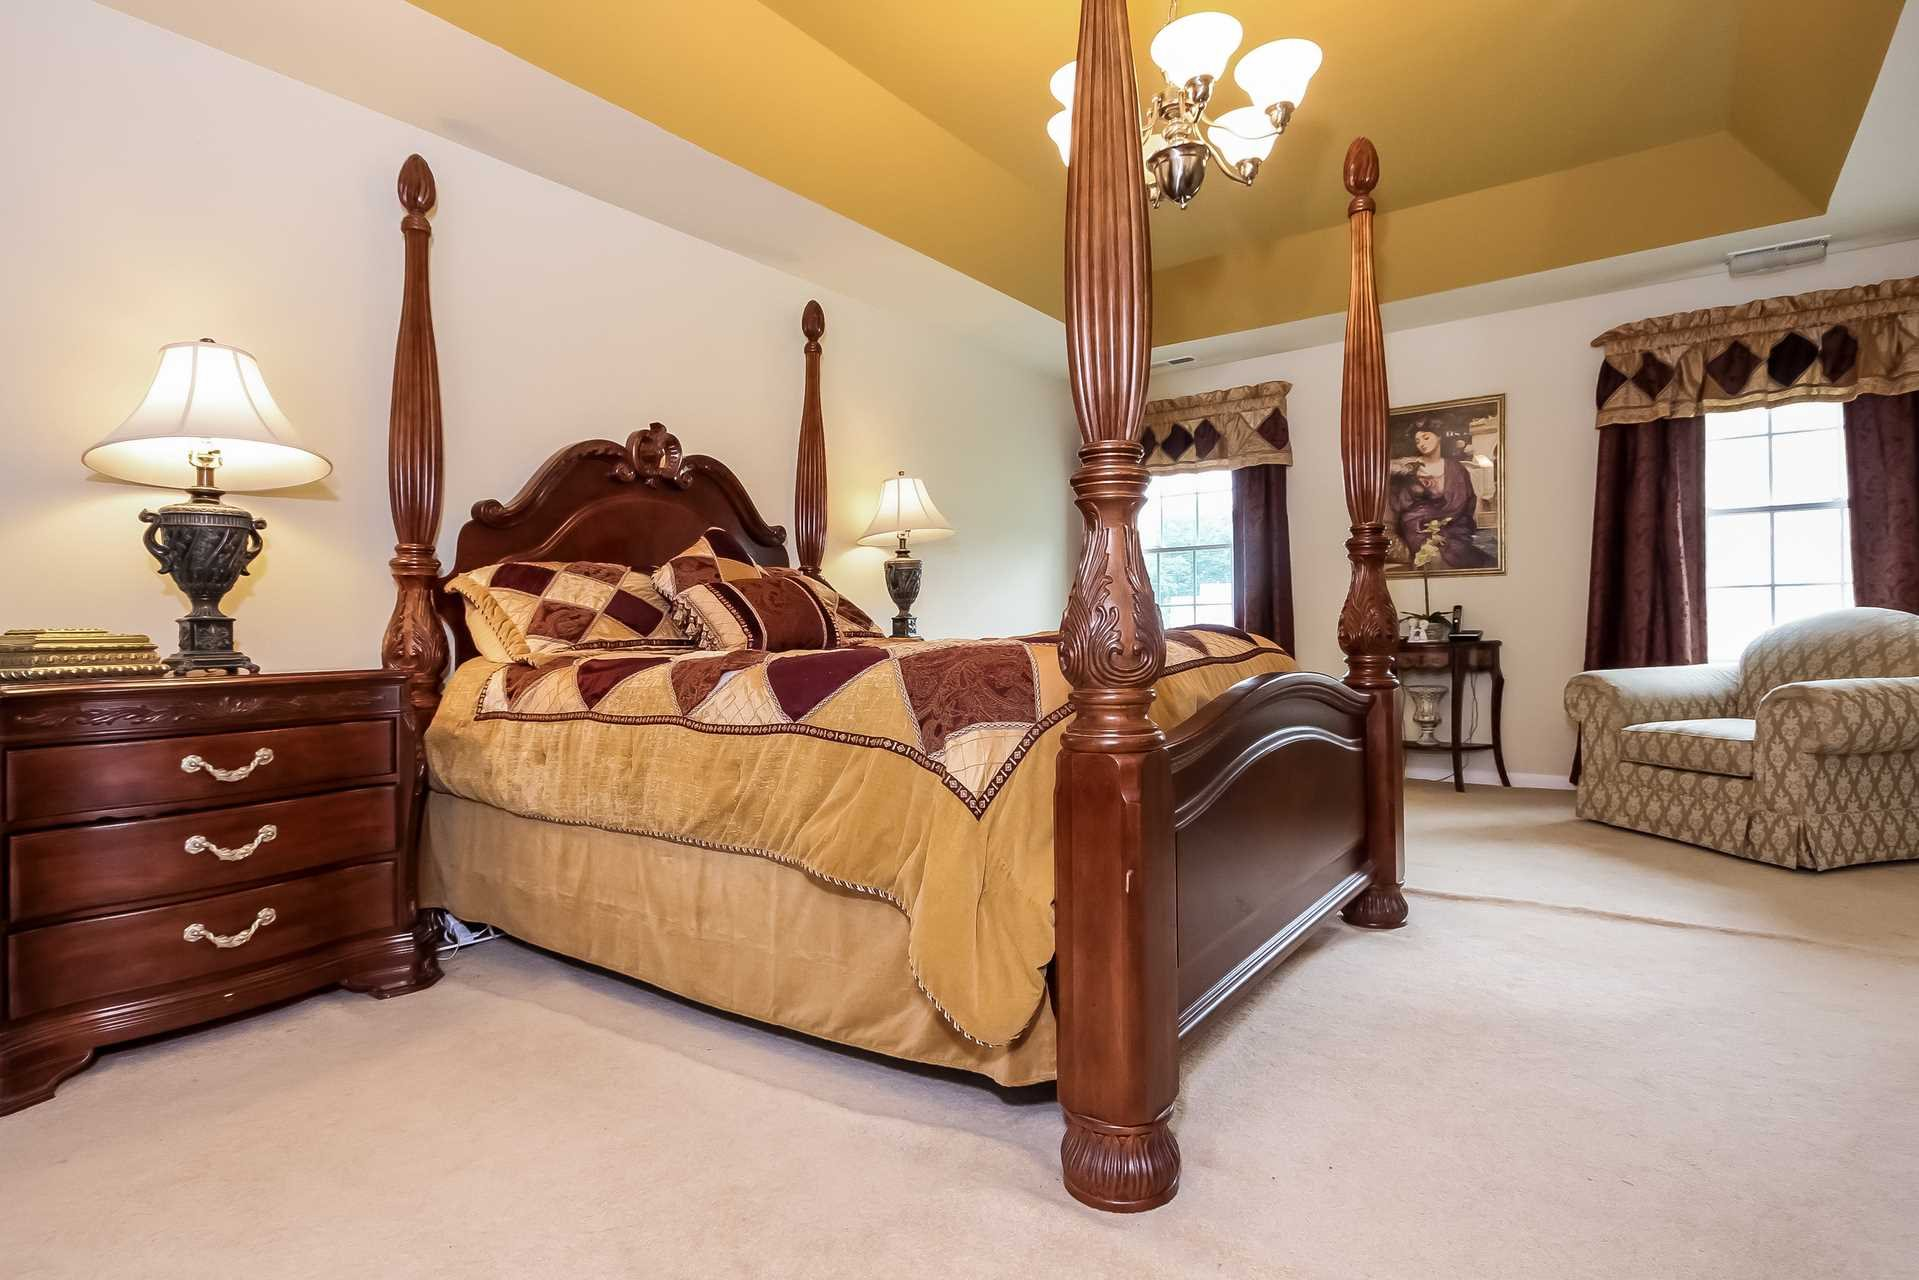 Additional photo for property listing at 132 SPY GLASS HILL ROAD 132 SPY GLASS HILL ROAD East Fishkill, New York 12533 United States